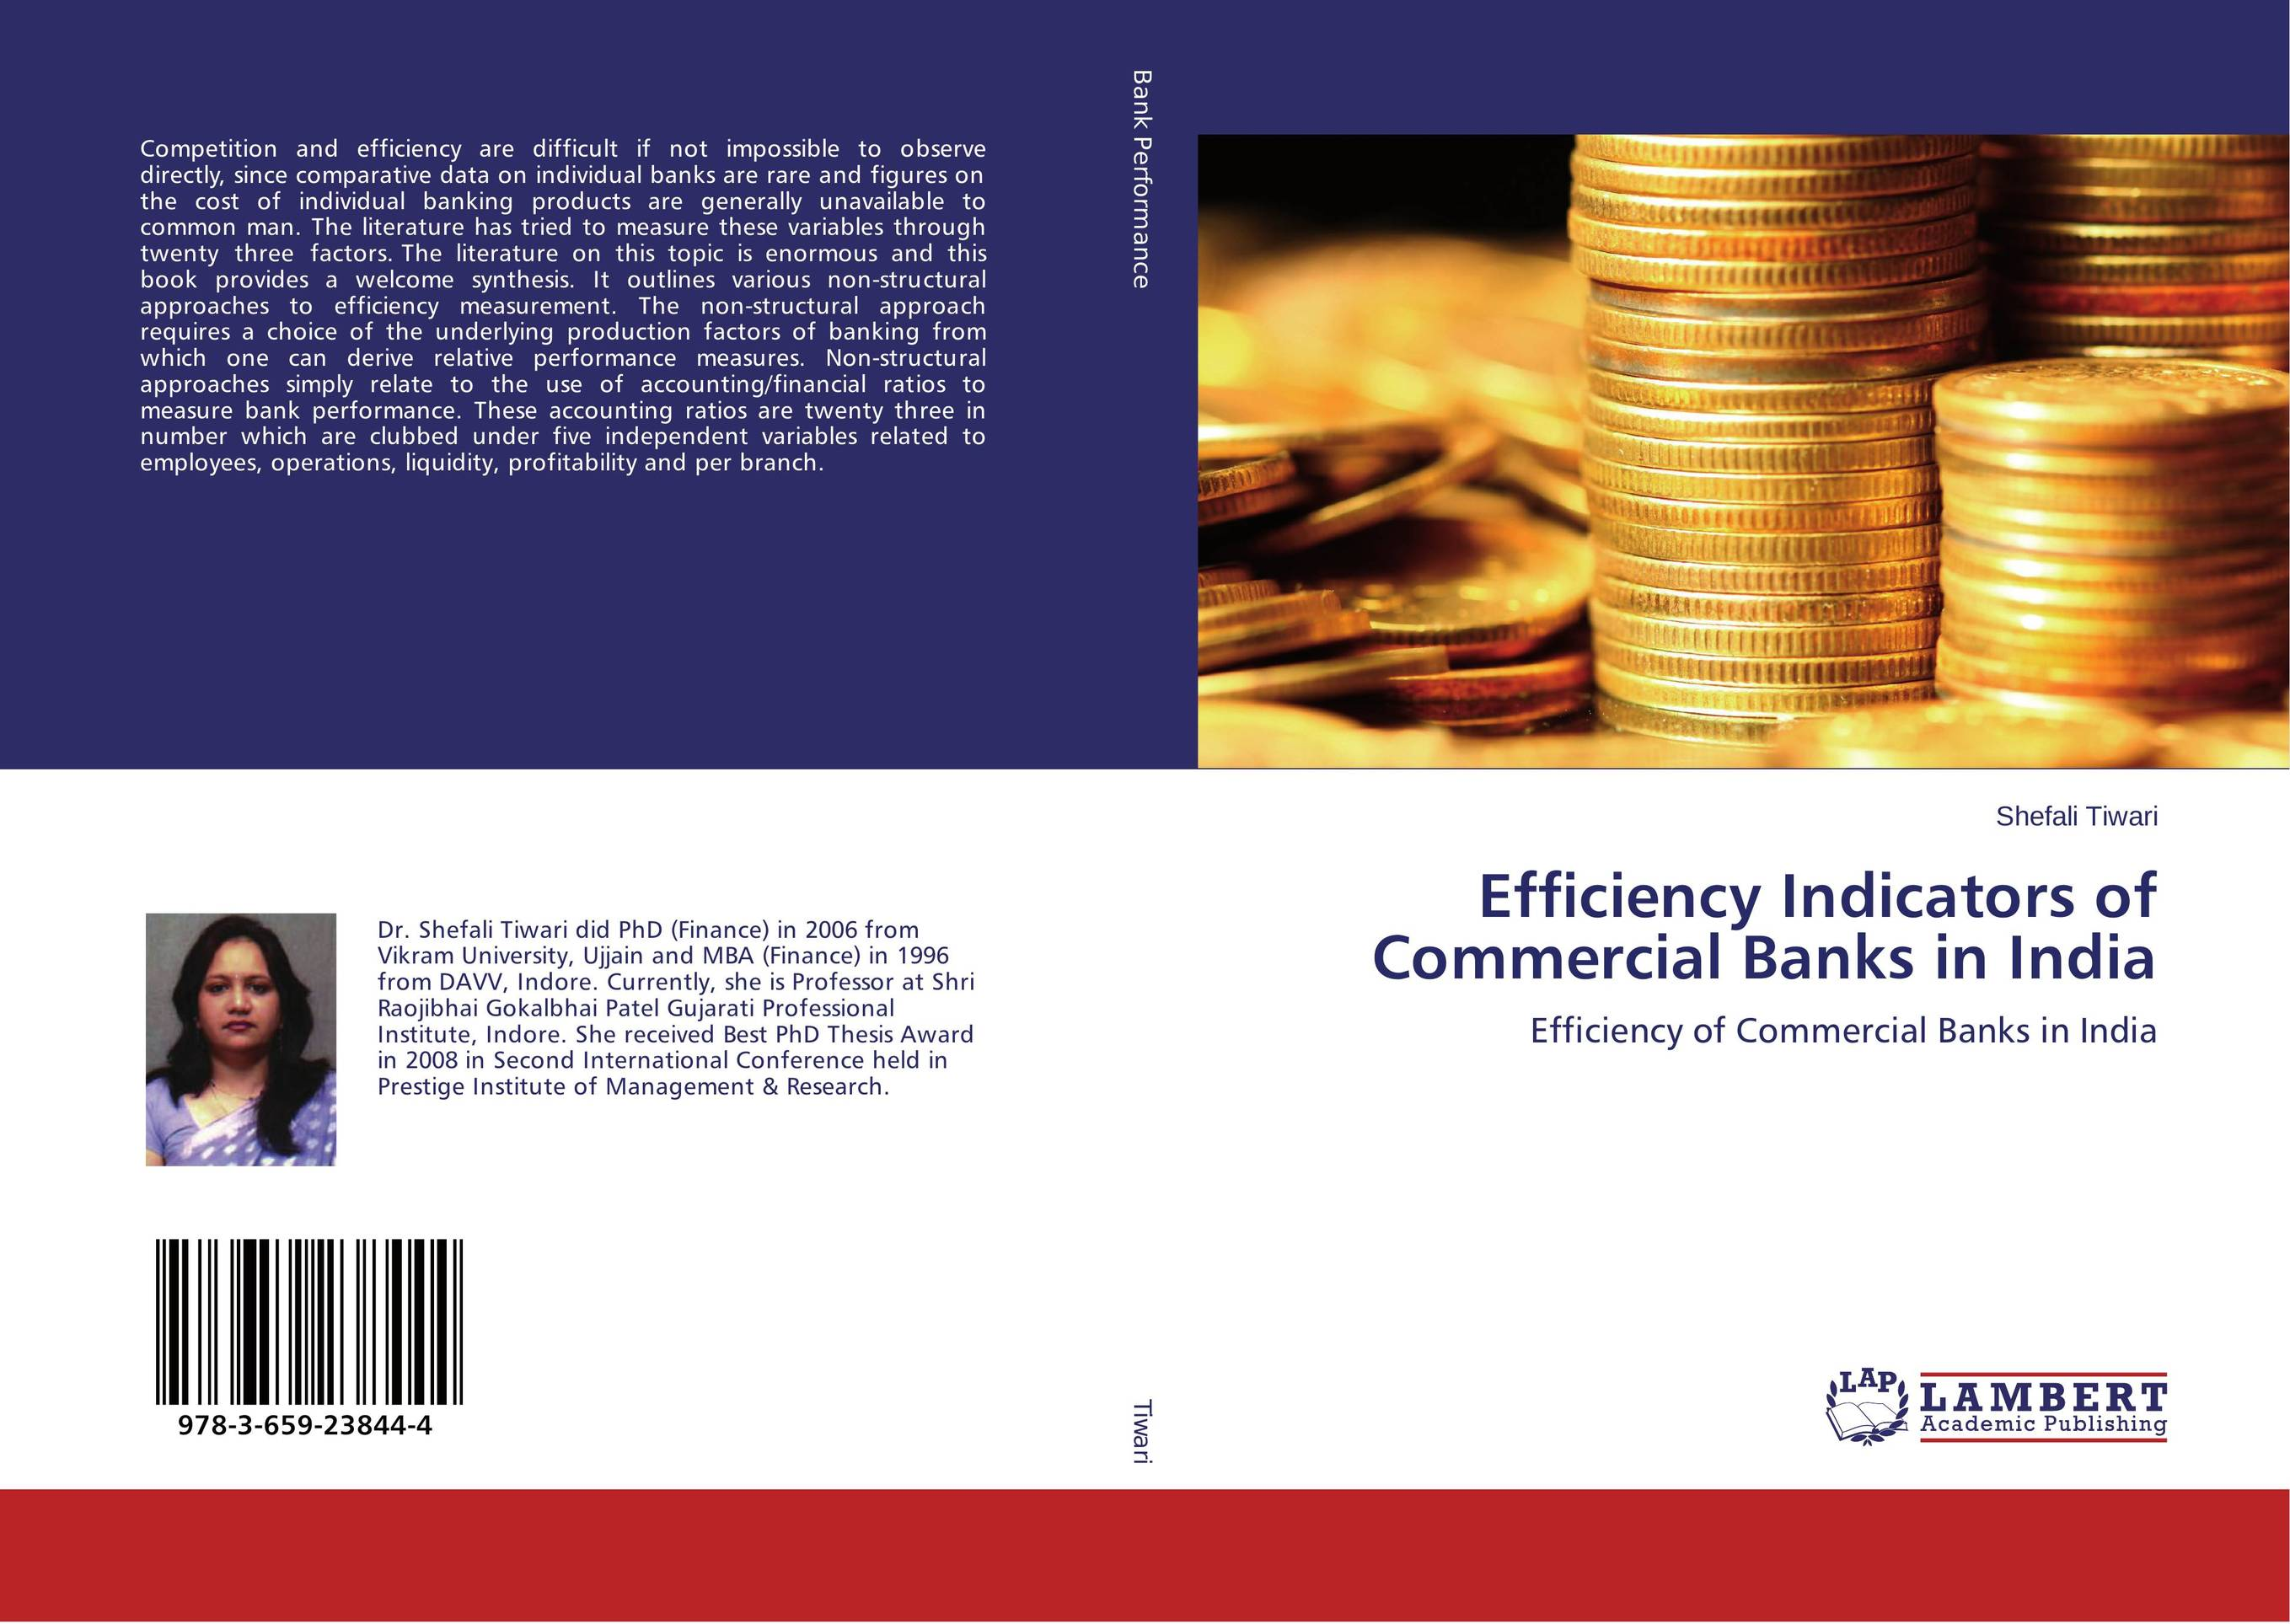 Efficiency Indicators of Commercial Banks in India the twenty three